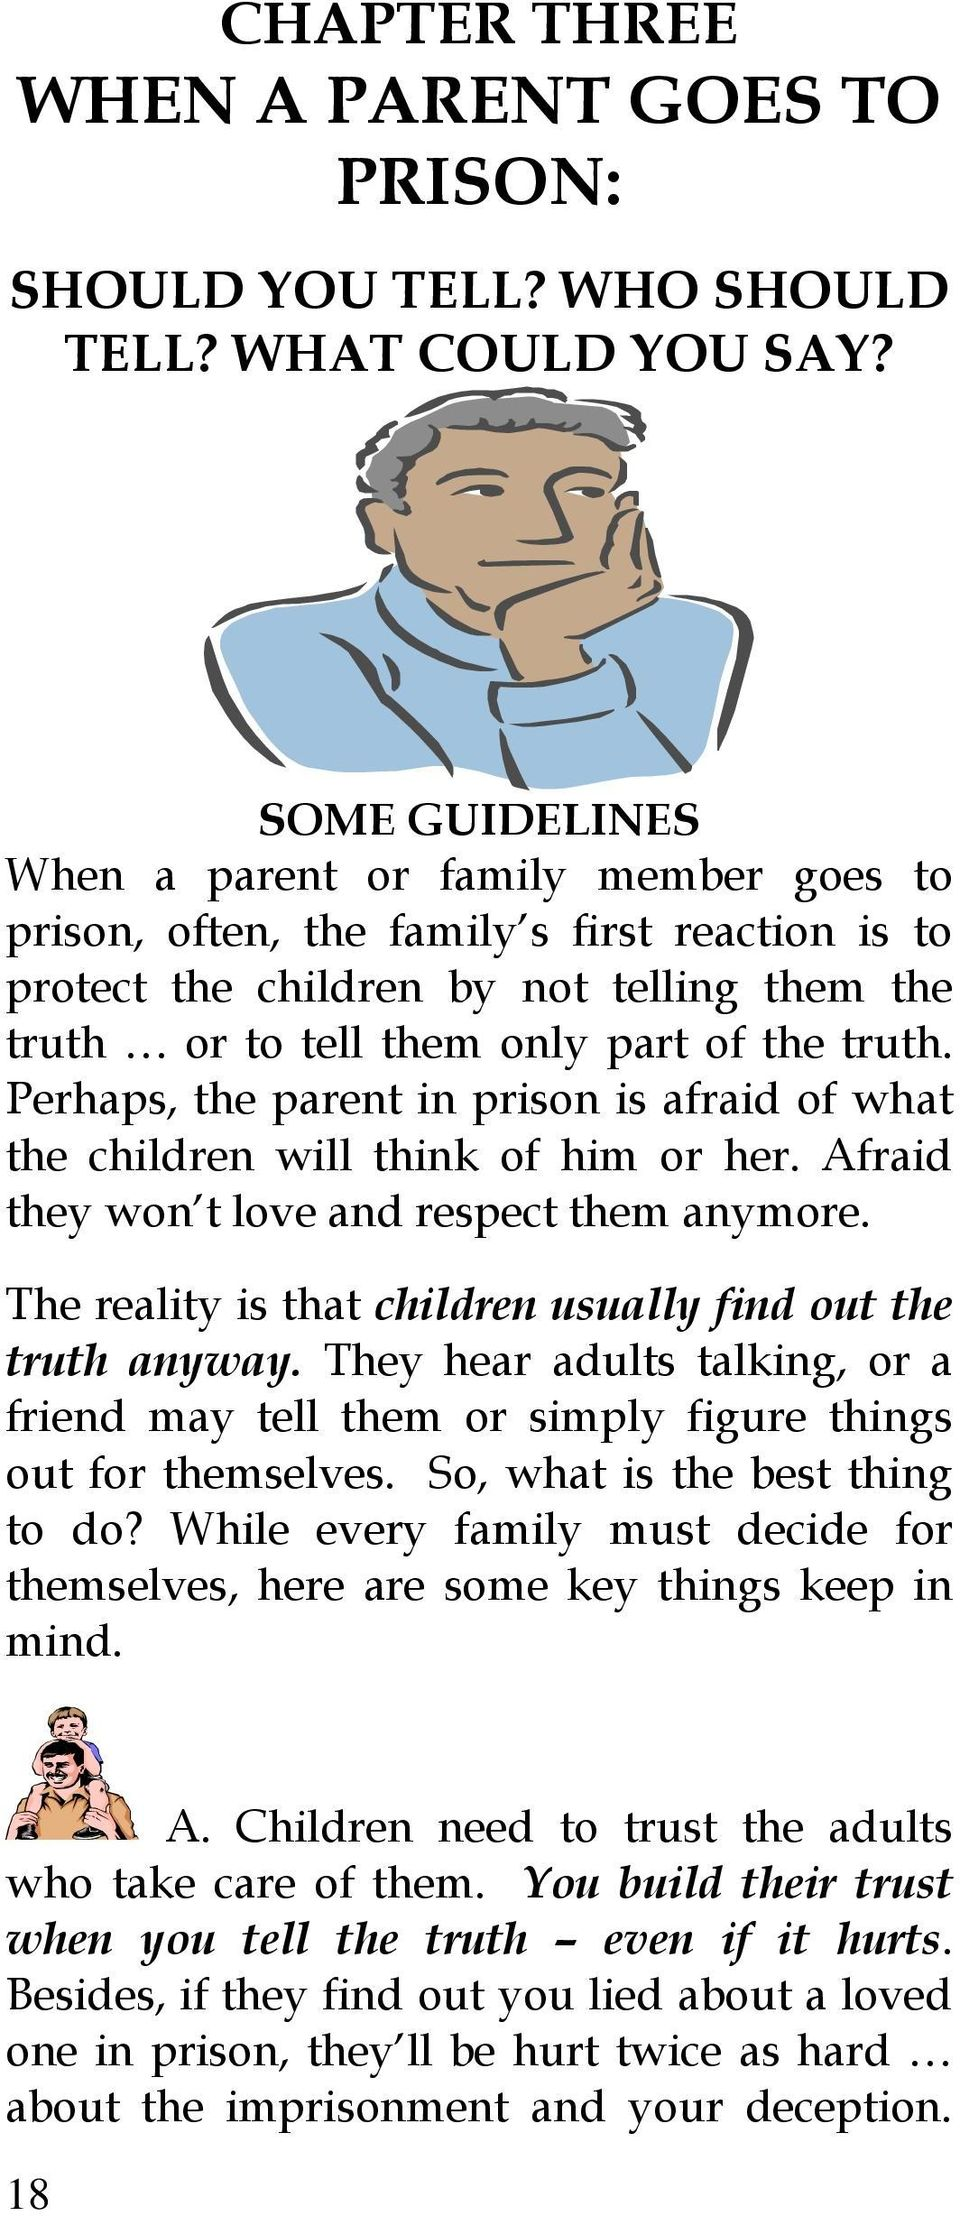 Kids With Parents In Prison Often Deal >> What About Me When A Parent Goes To Prison A Guide To Discussing